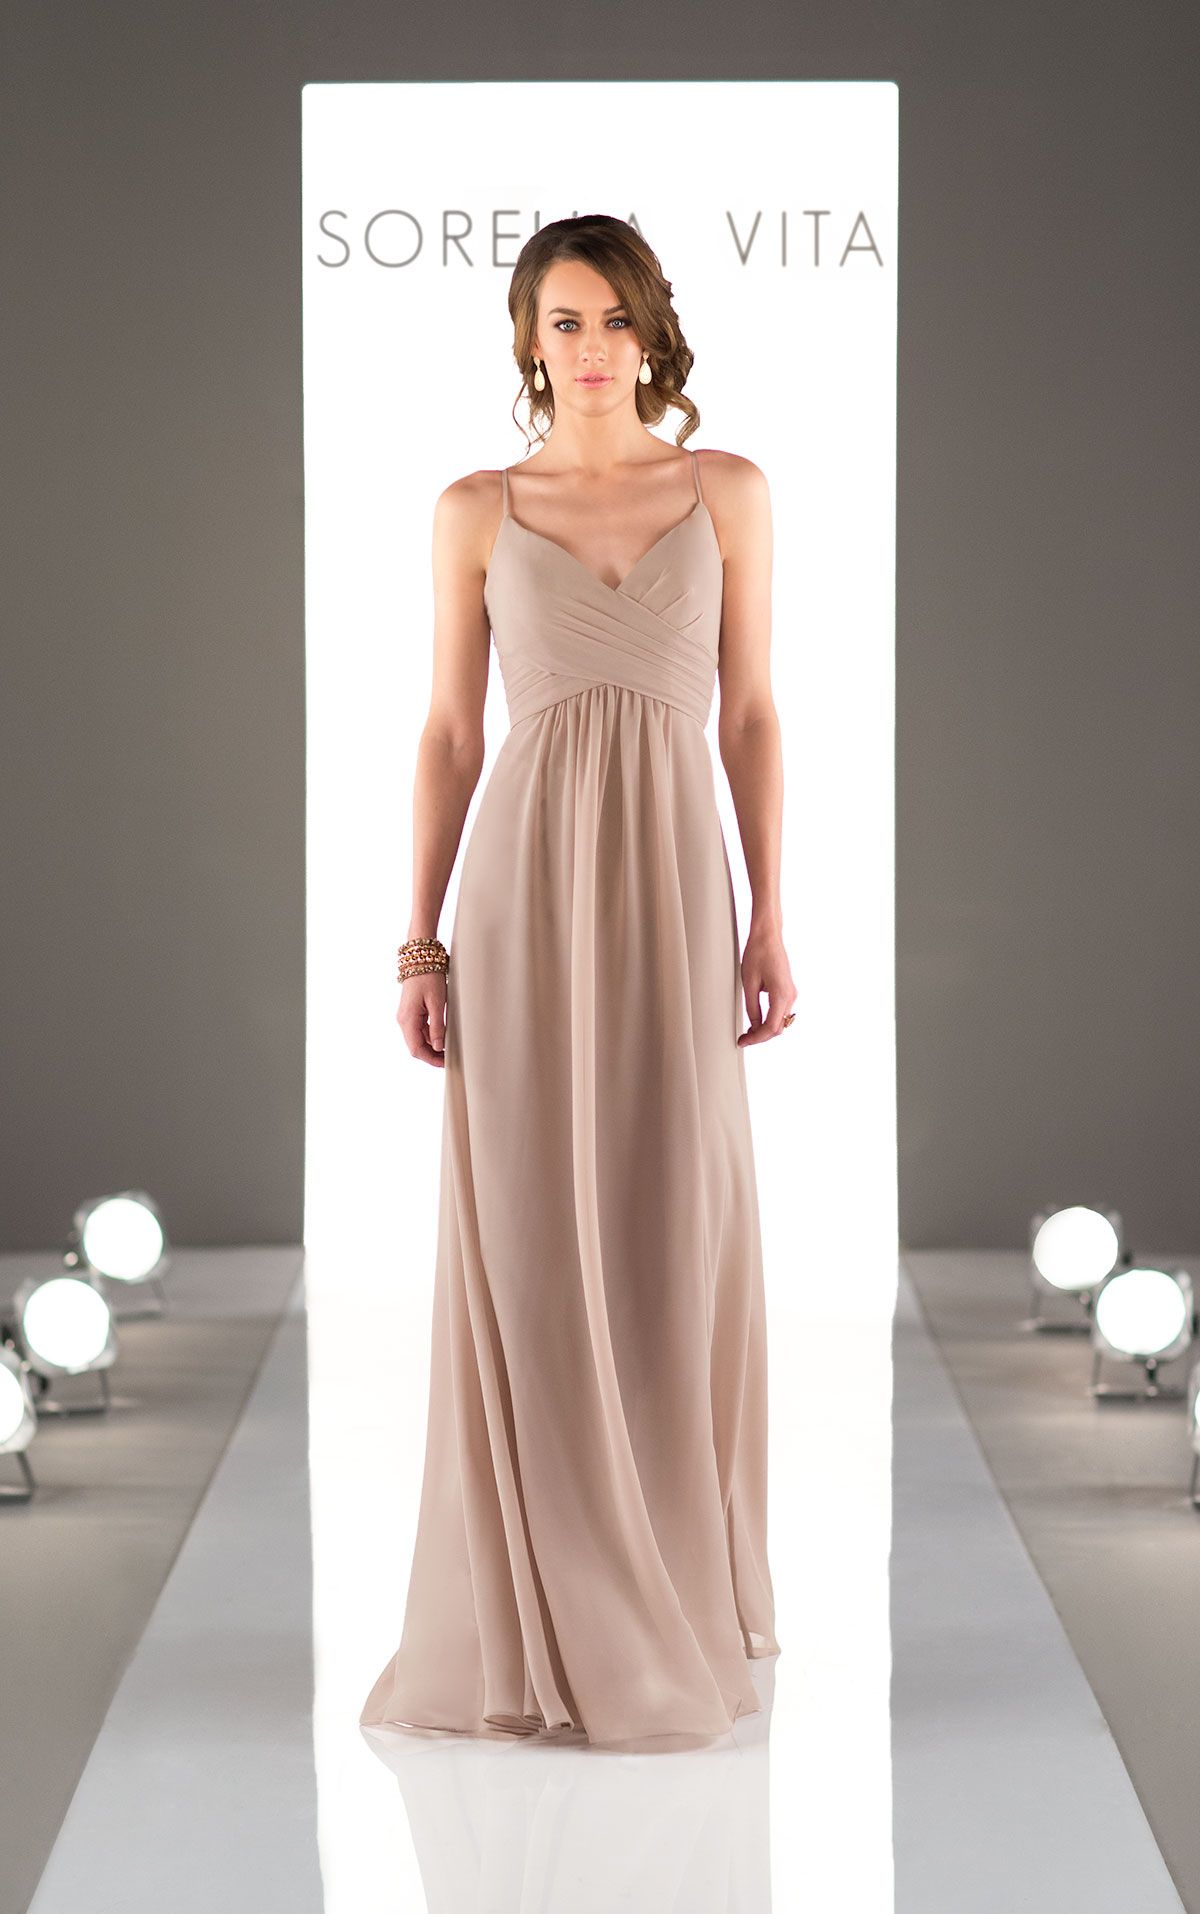 42cb2c5d89f9 A criss-cross bodice of this bridesmaid gown flows perfectly into a  floor-length chiffon skirt. Featuring a v-neck and spaghetti straps, it is  the perfect ...